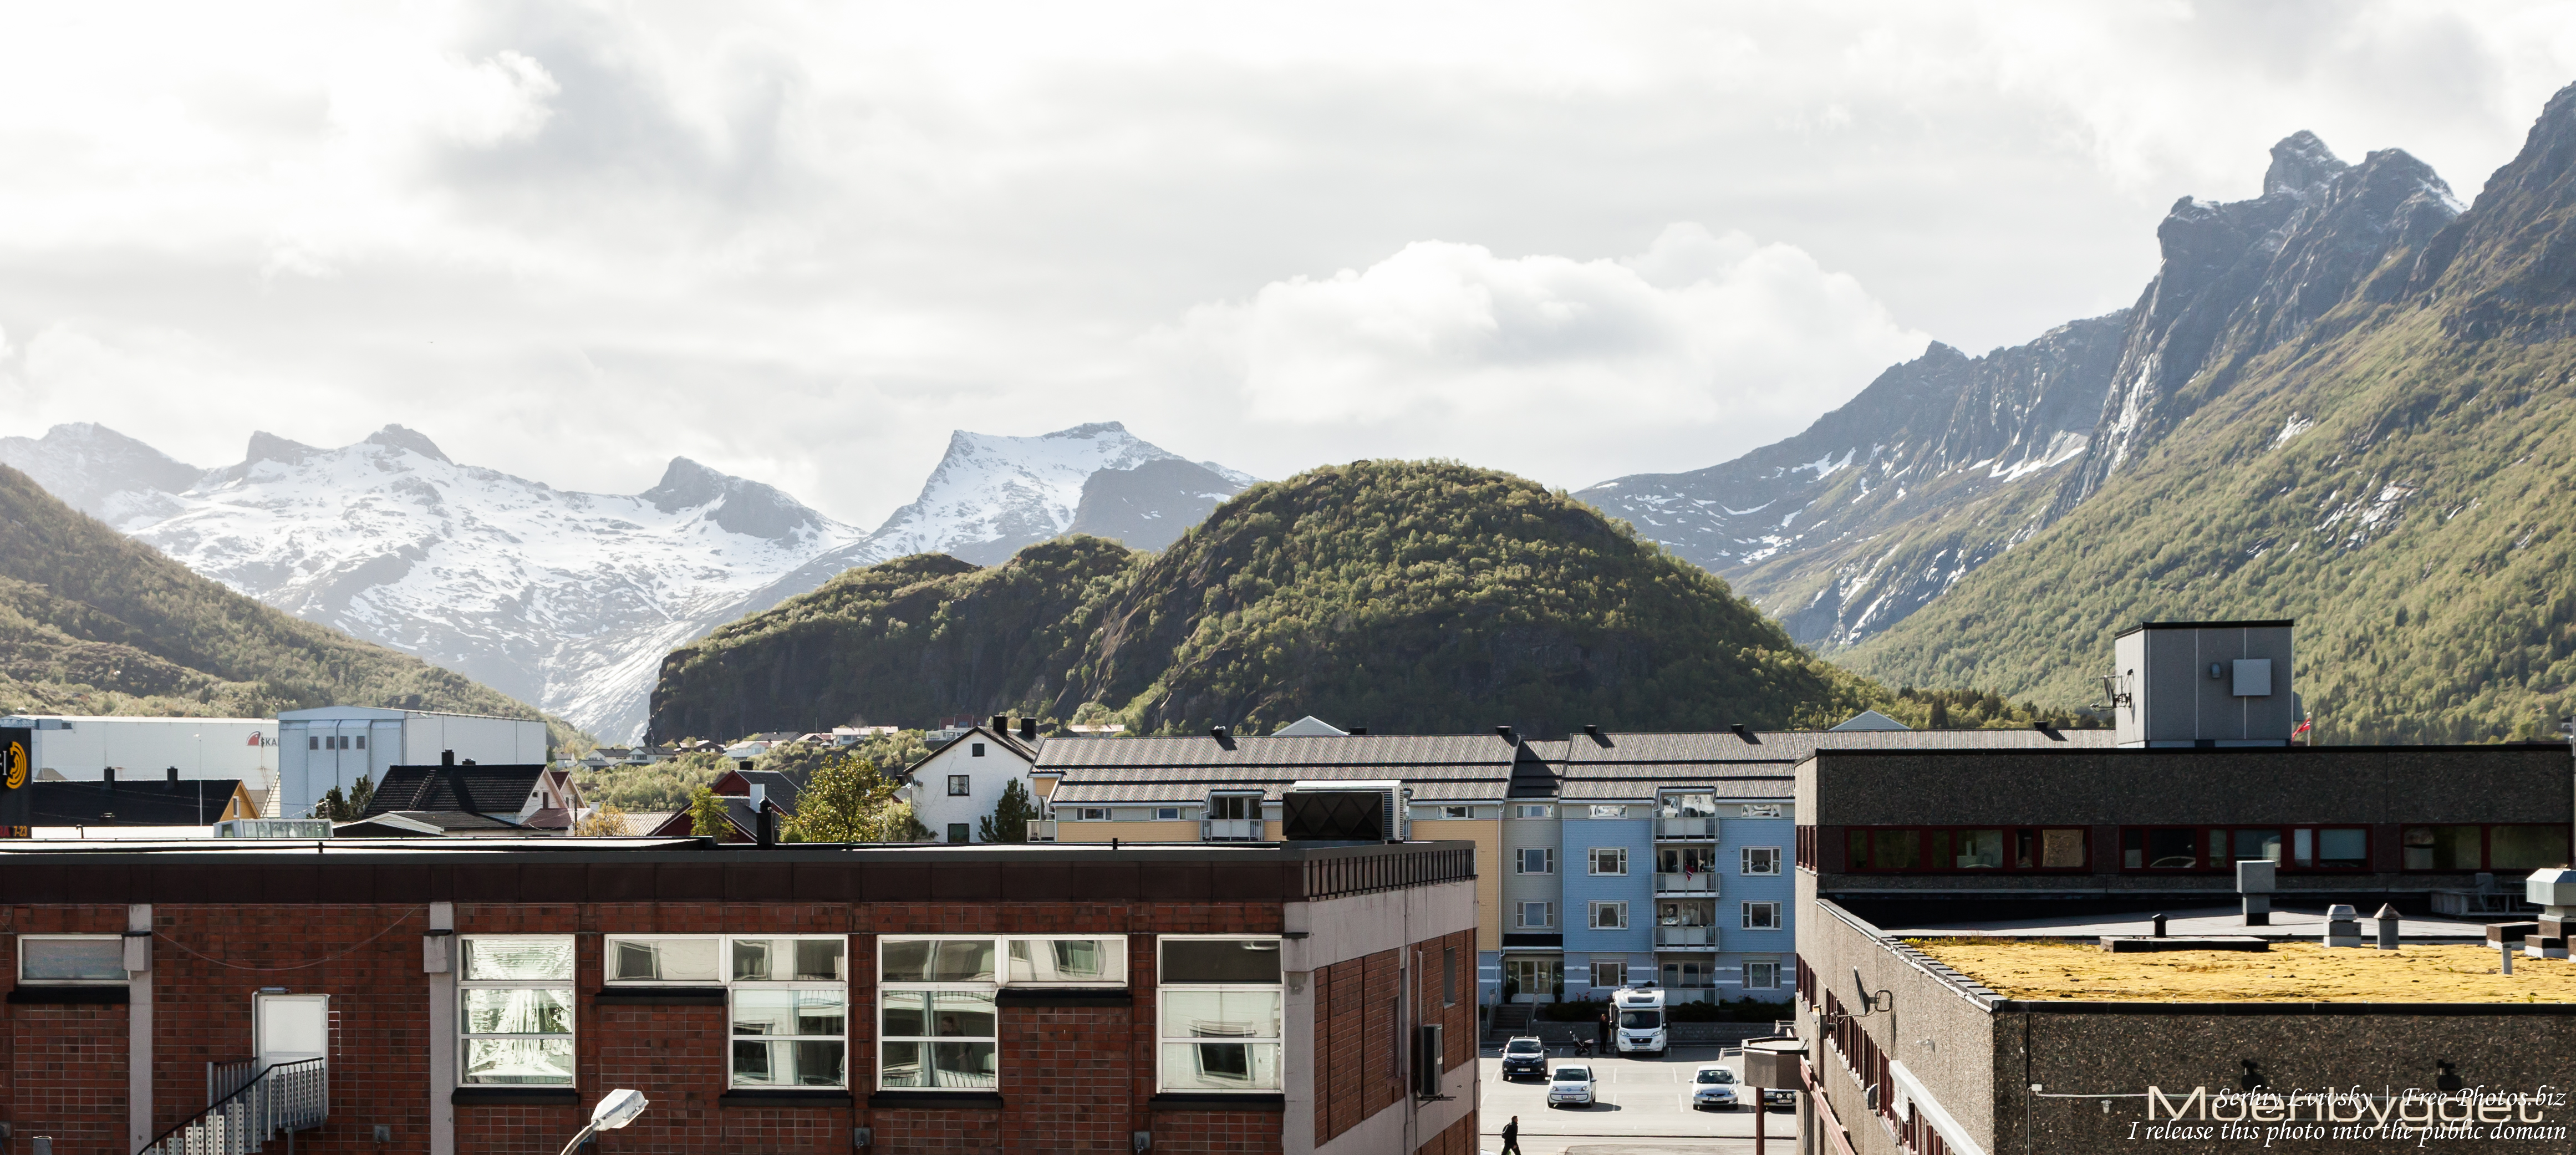 Svolvaer, Lofoten, Norway photographed in June 2018 by Serhiy Lvivsky, picture 17